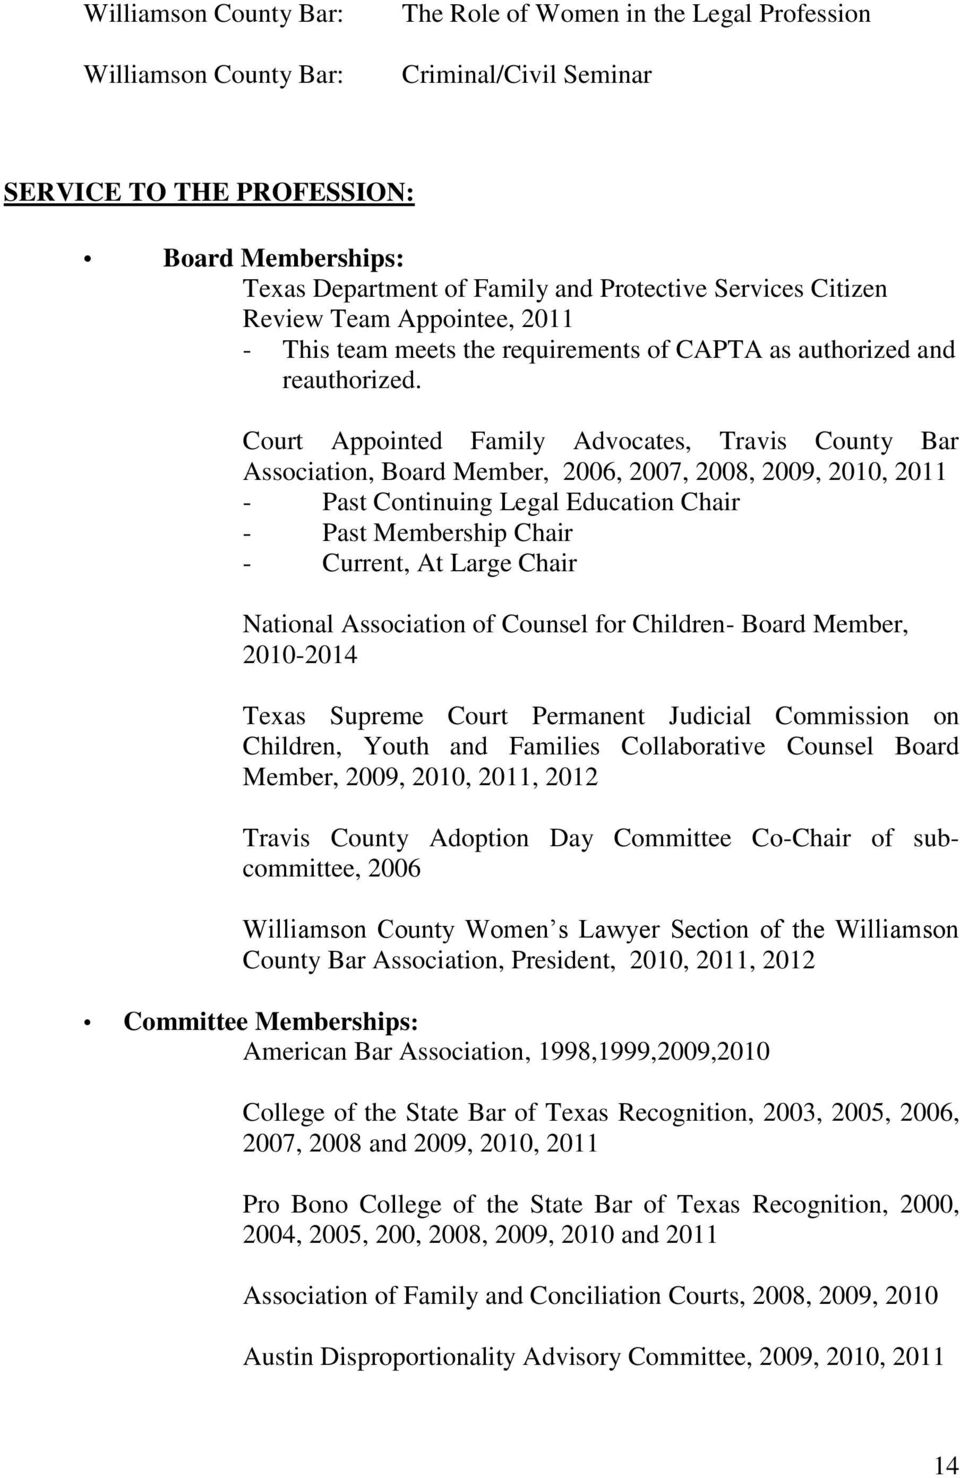 Court Appointed Family Advocates, Travis County Bar Association, Board Member, 2006, 2007, 2008, 2009, 2010, 2011 - Past Continuing Legal Education Chair - Past Membership Chair - Current, At Large